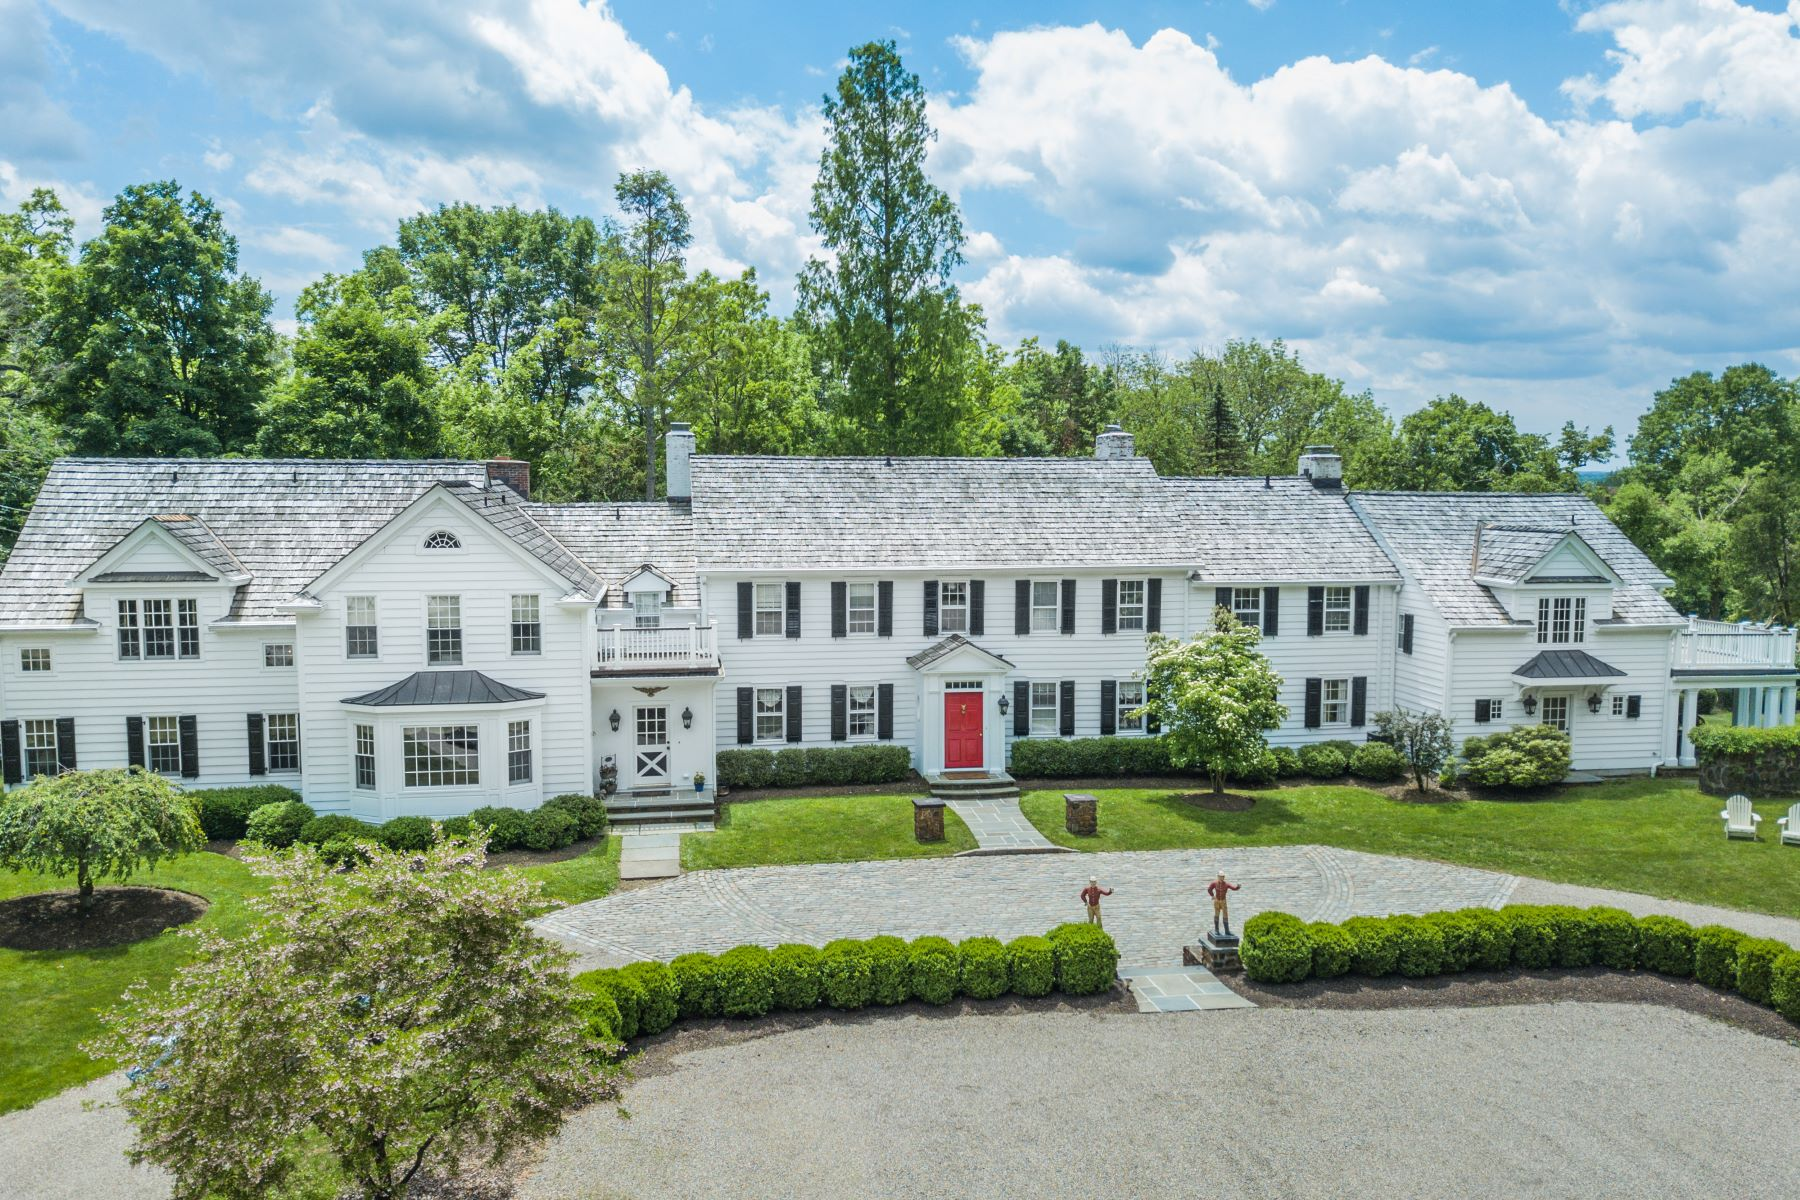 Single Family Home for Sale at Lee's Hill Farm 88 Lees Hill Road, Harding Township, New Jersey 07976 United States